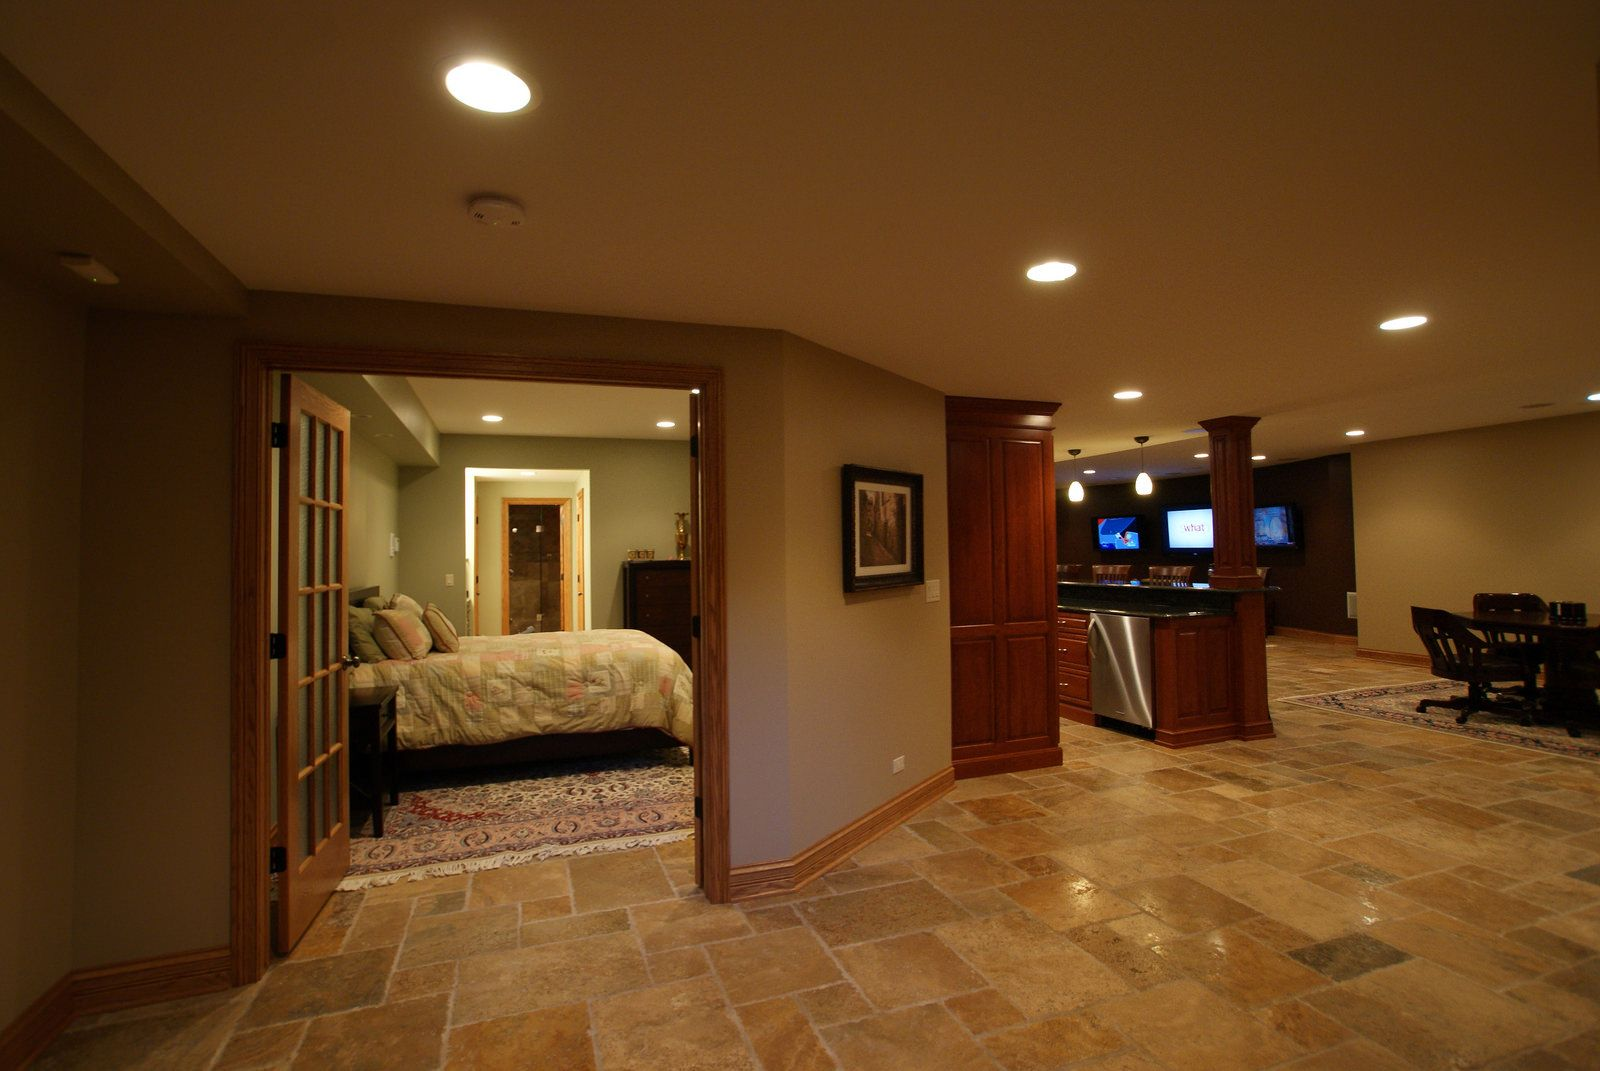 Remodeling Basement Ideas Adorable Amazing Marietta Basement Remodels Room Additions Georgia Also Design Decoration